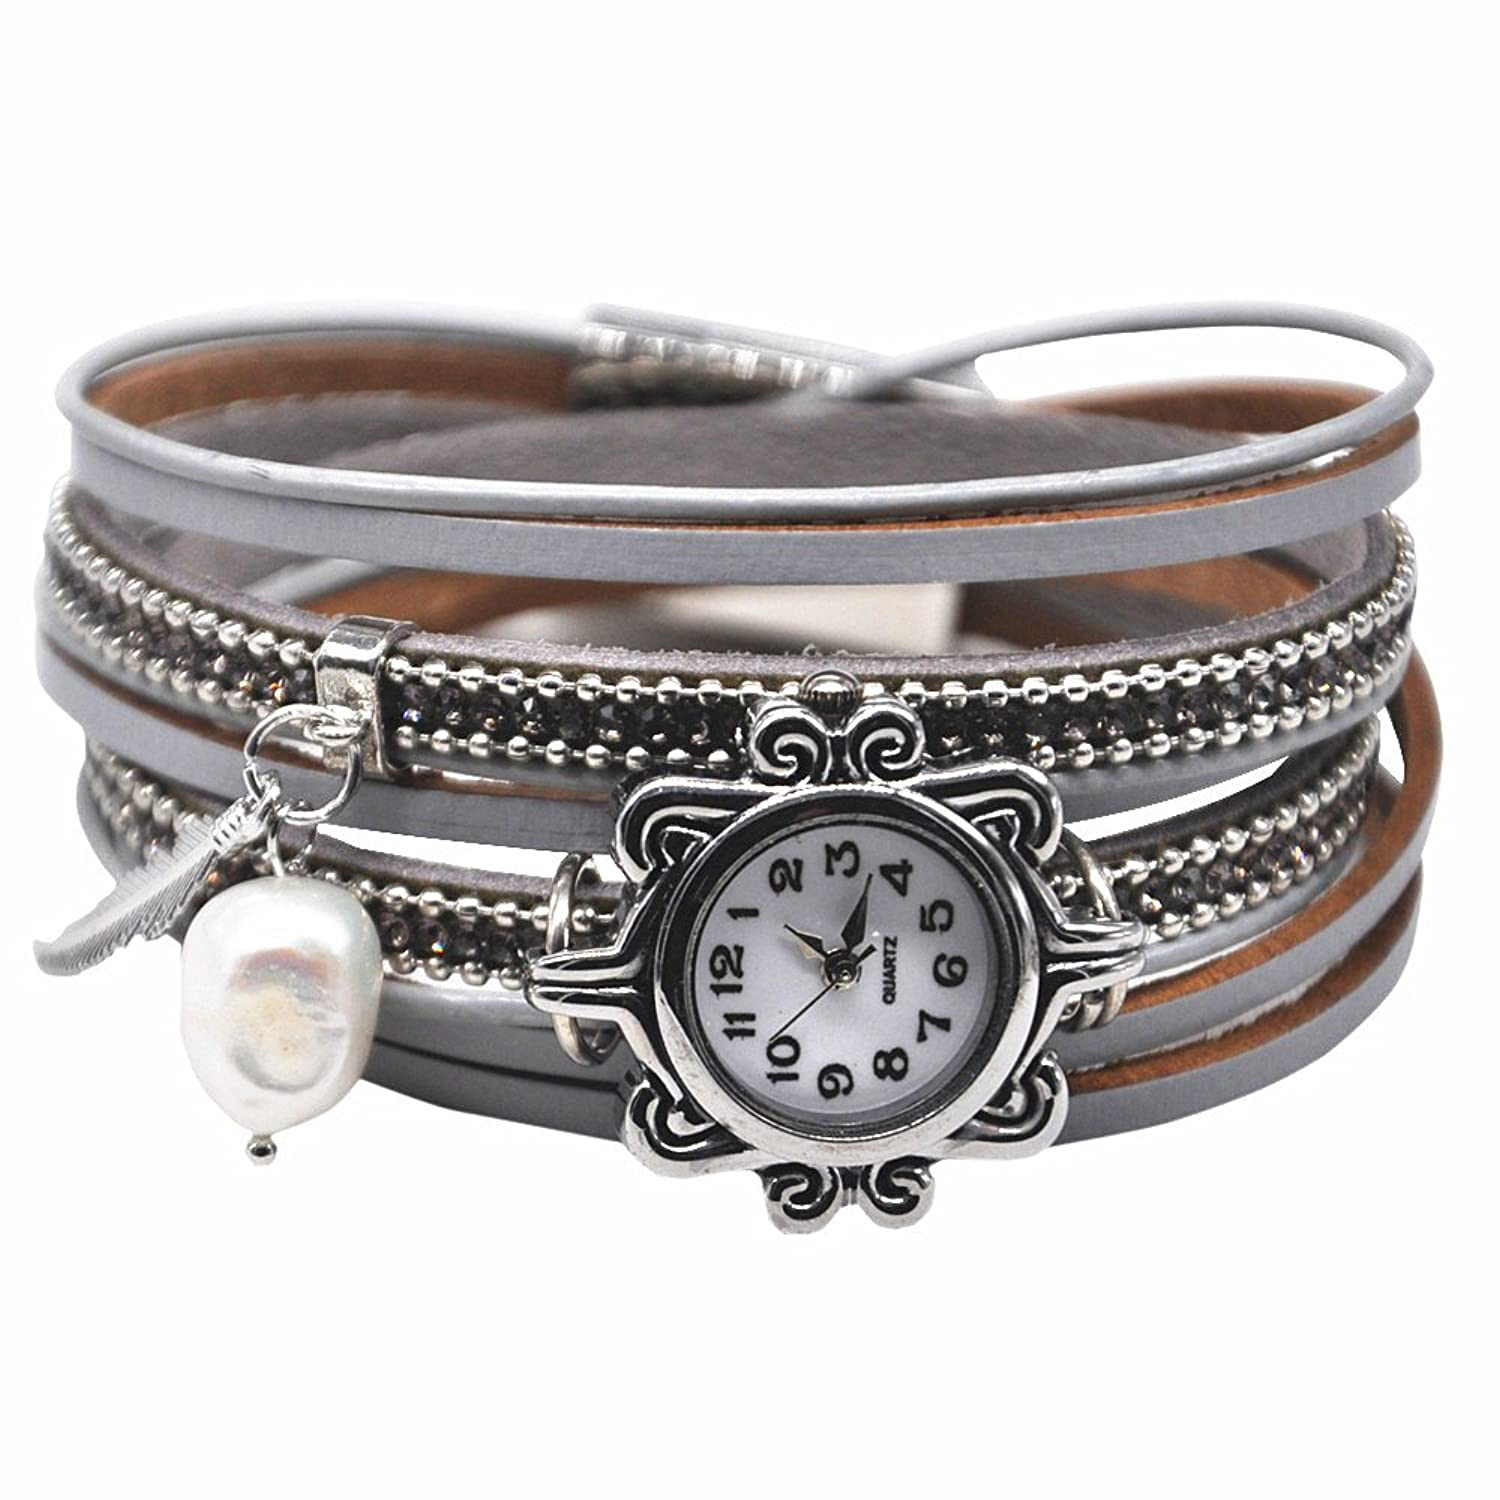 Amazon.com: MINILUJIA Vintage Casual Women Leather Watch Small Watch Dial 2 Wrap Around Watch with Feather Pearl Magnetic Clasp Black Strap (11.8